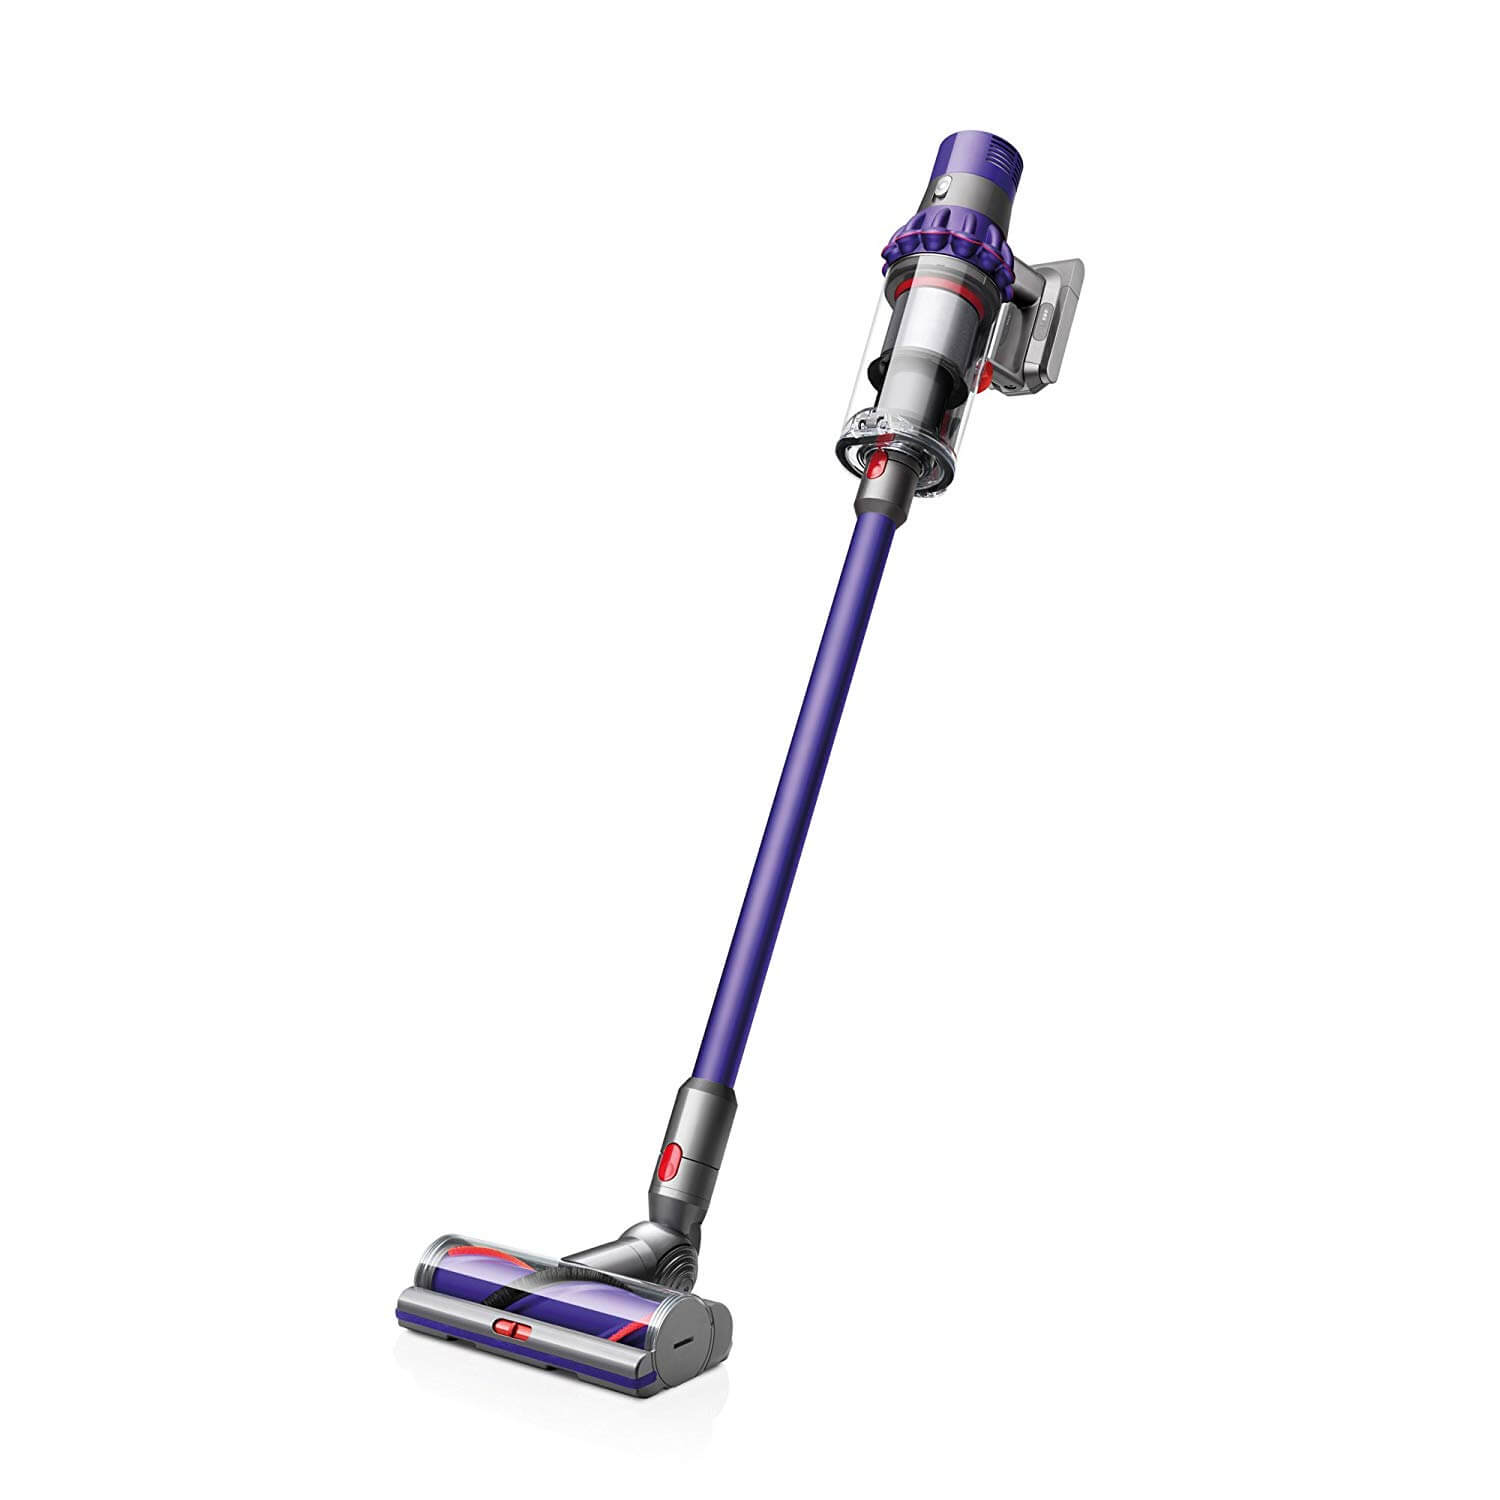 Dyson Cyclone V10 Animal Lightweight